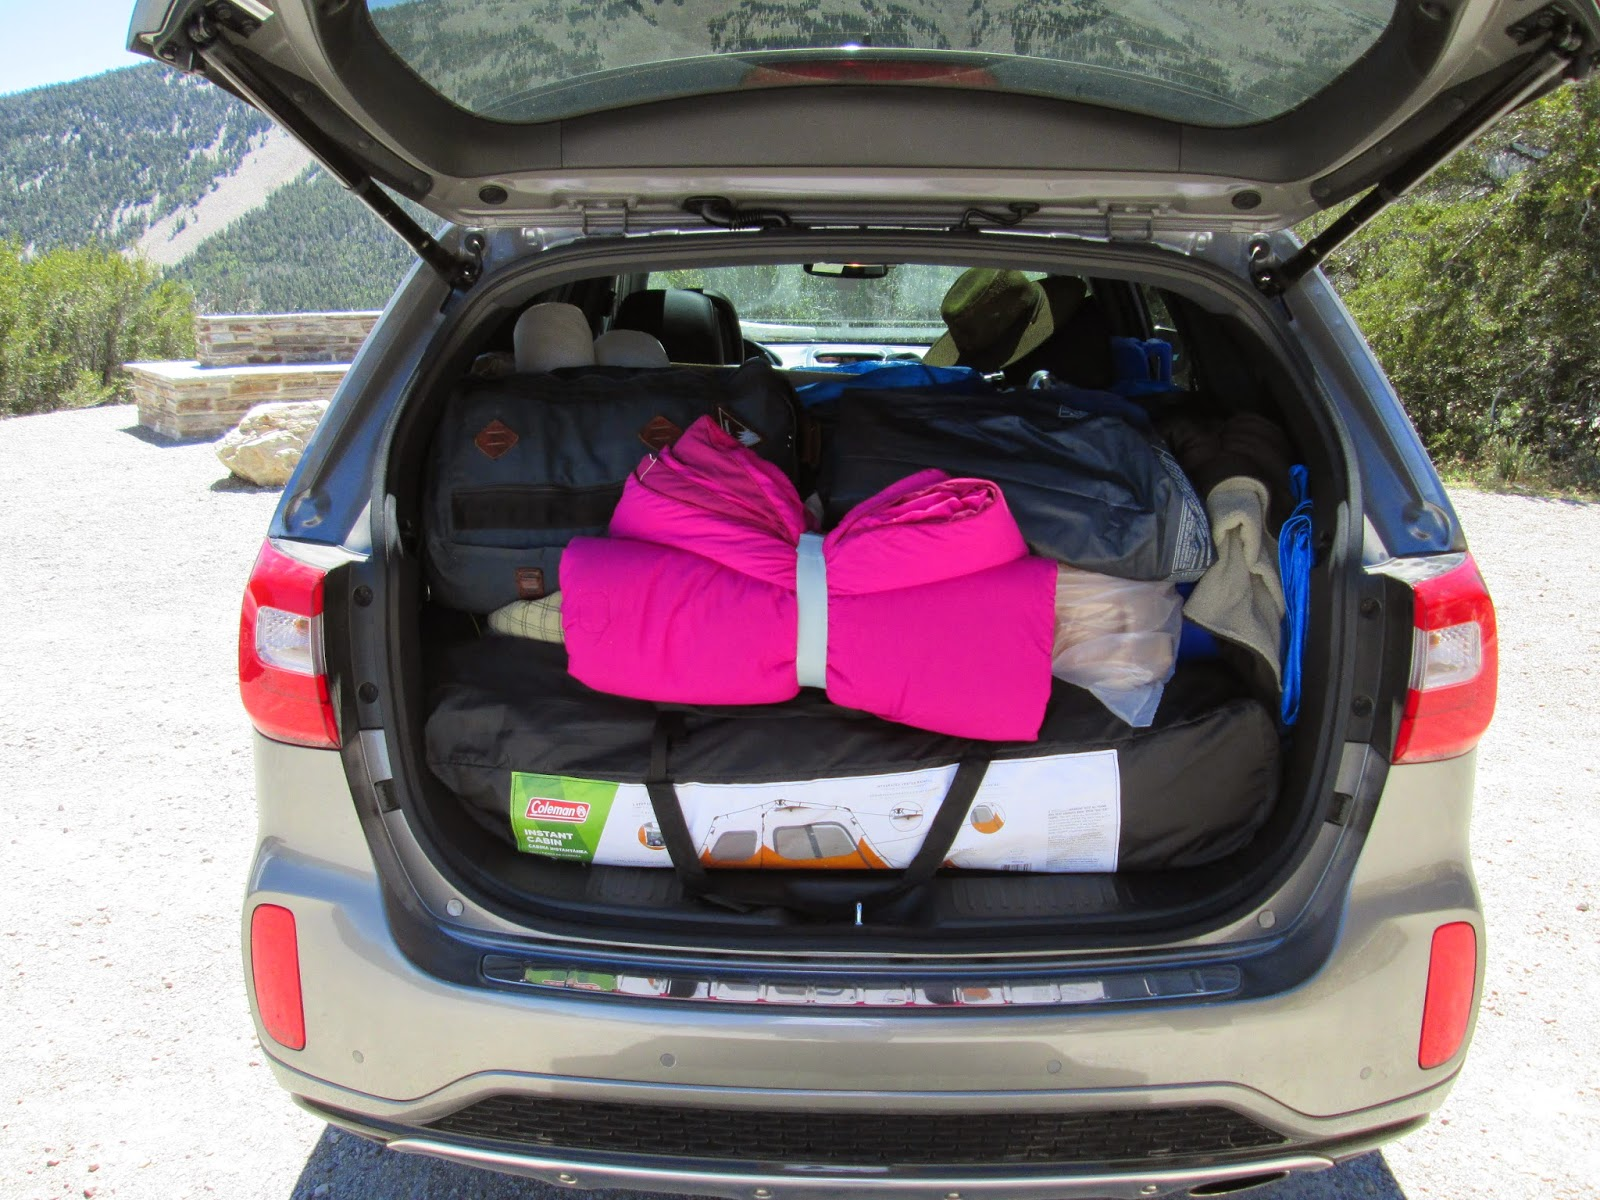 2015 Kia Sorento loaded rear